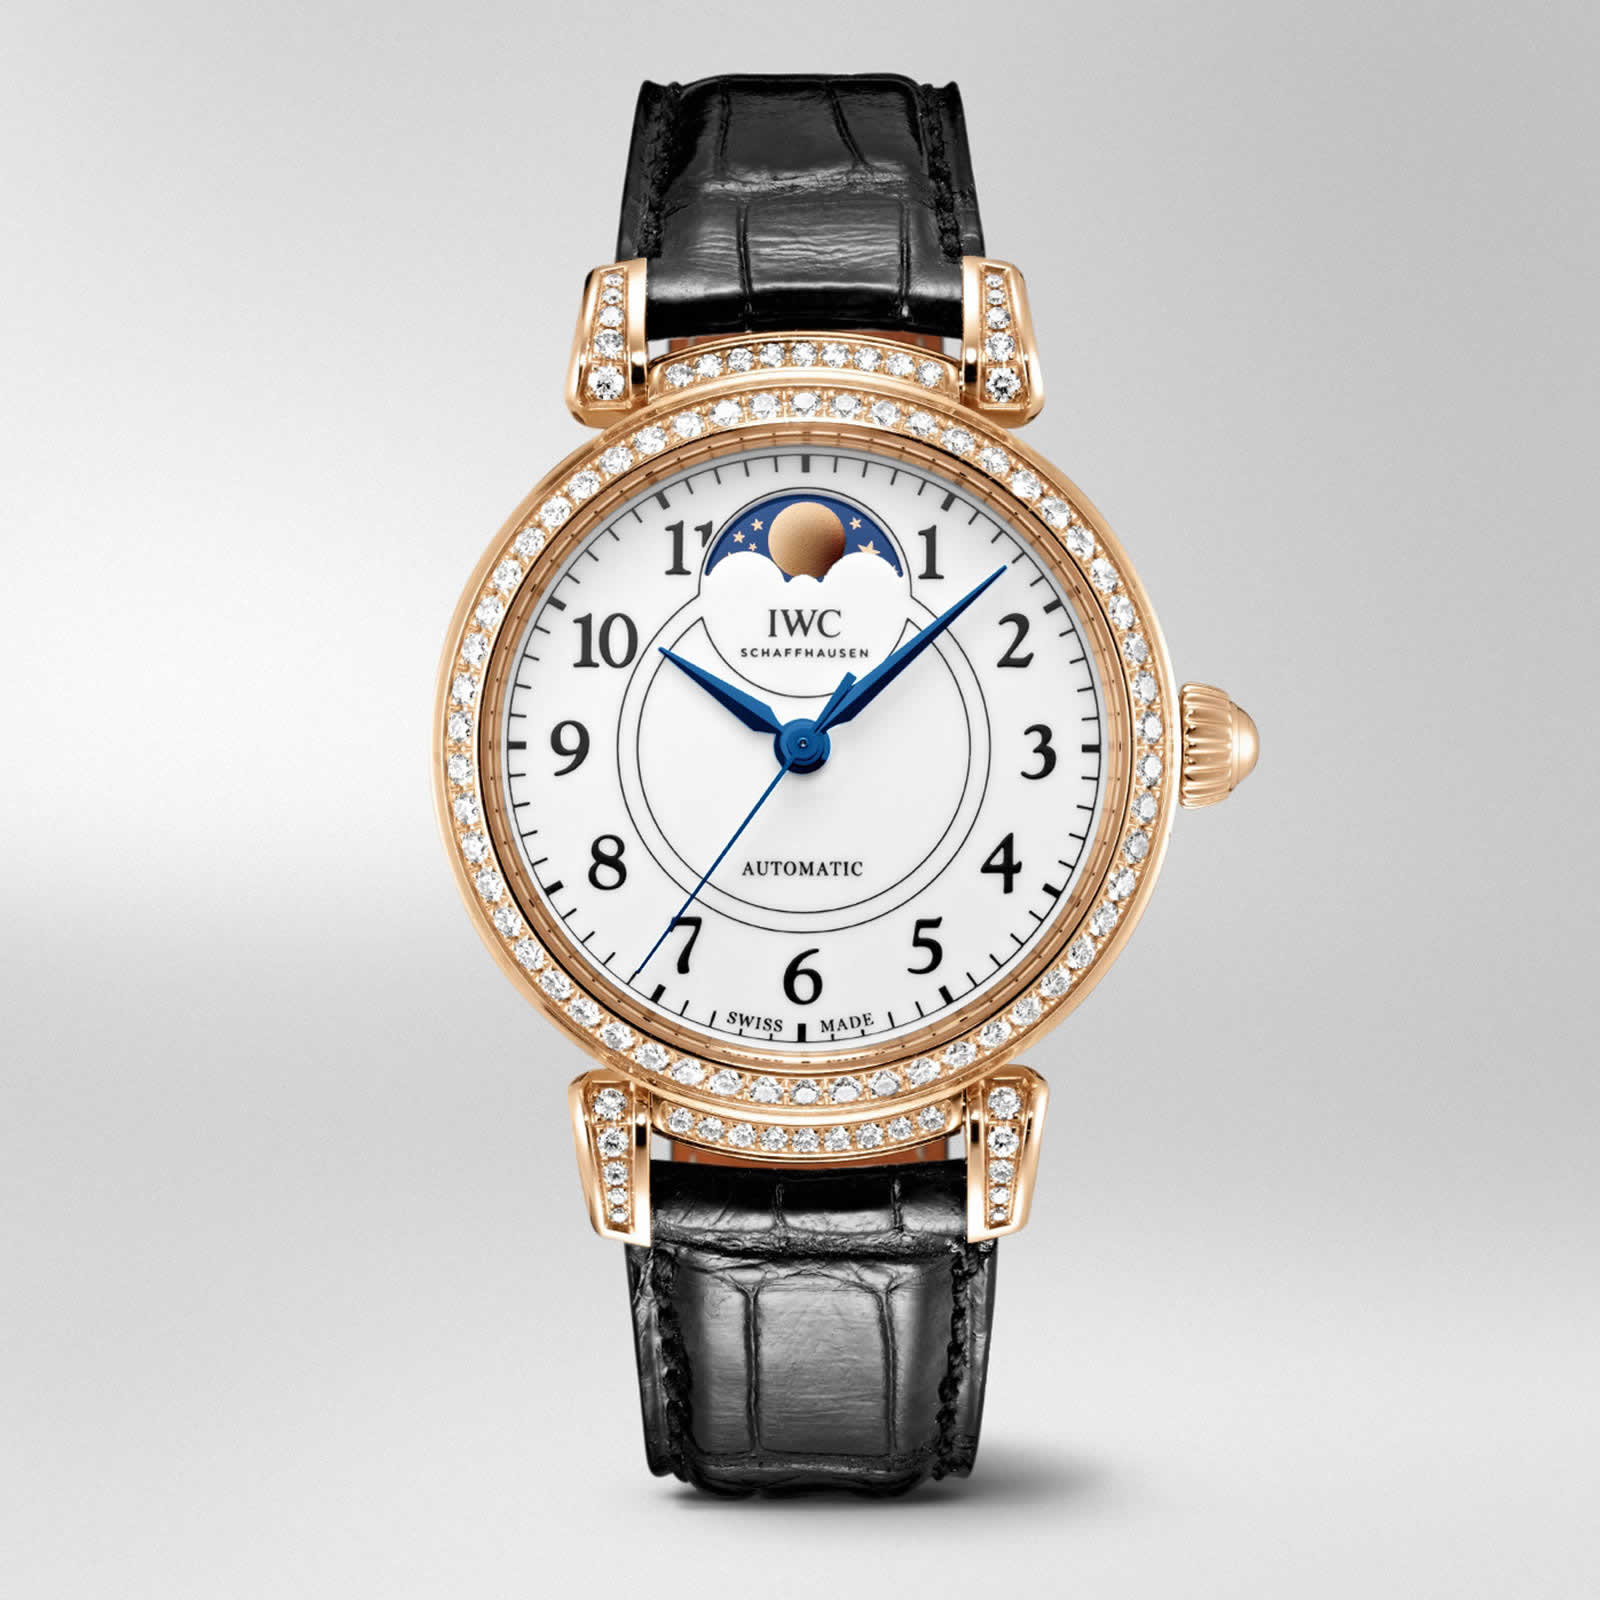 iwc-Da-Vinci-Automatic-Moon-Phase-36-Edition-150-Years-Pink-Gold.jpg